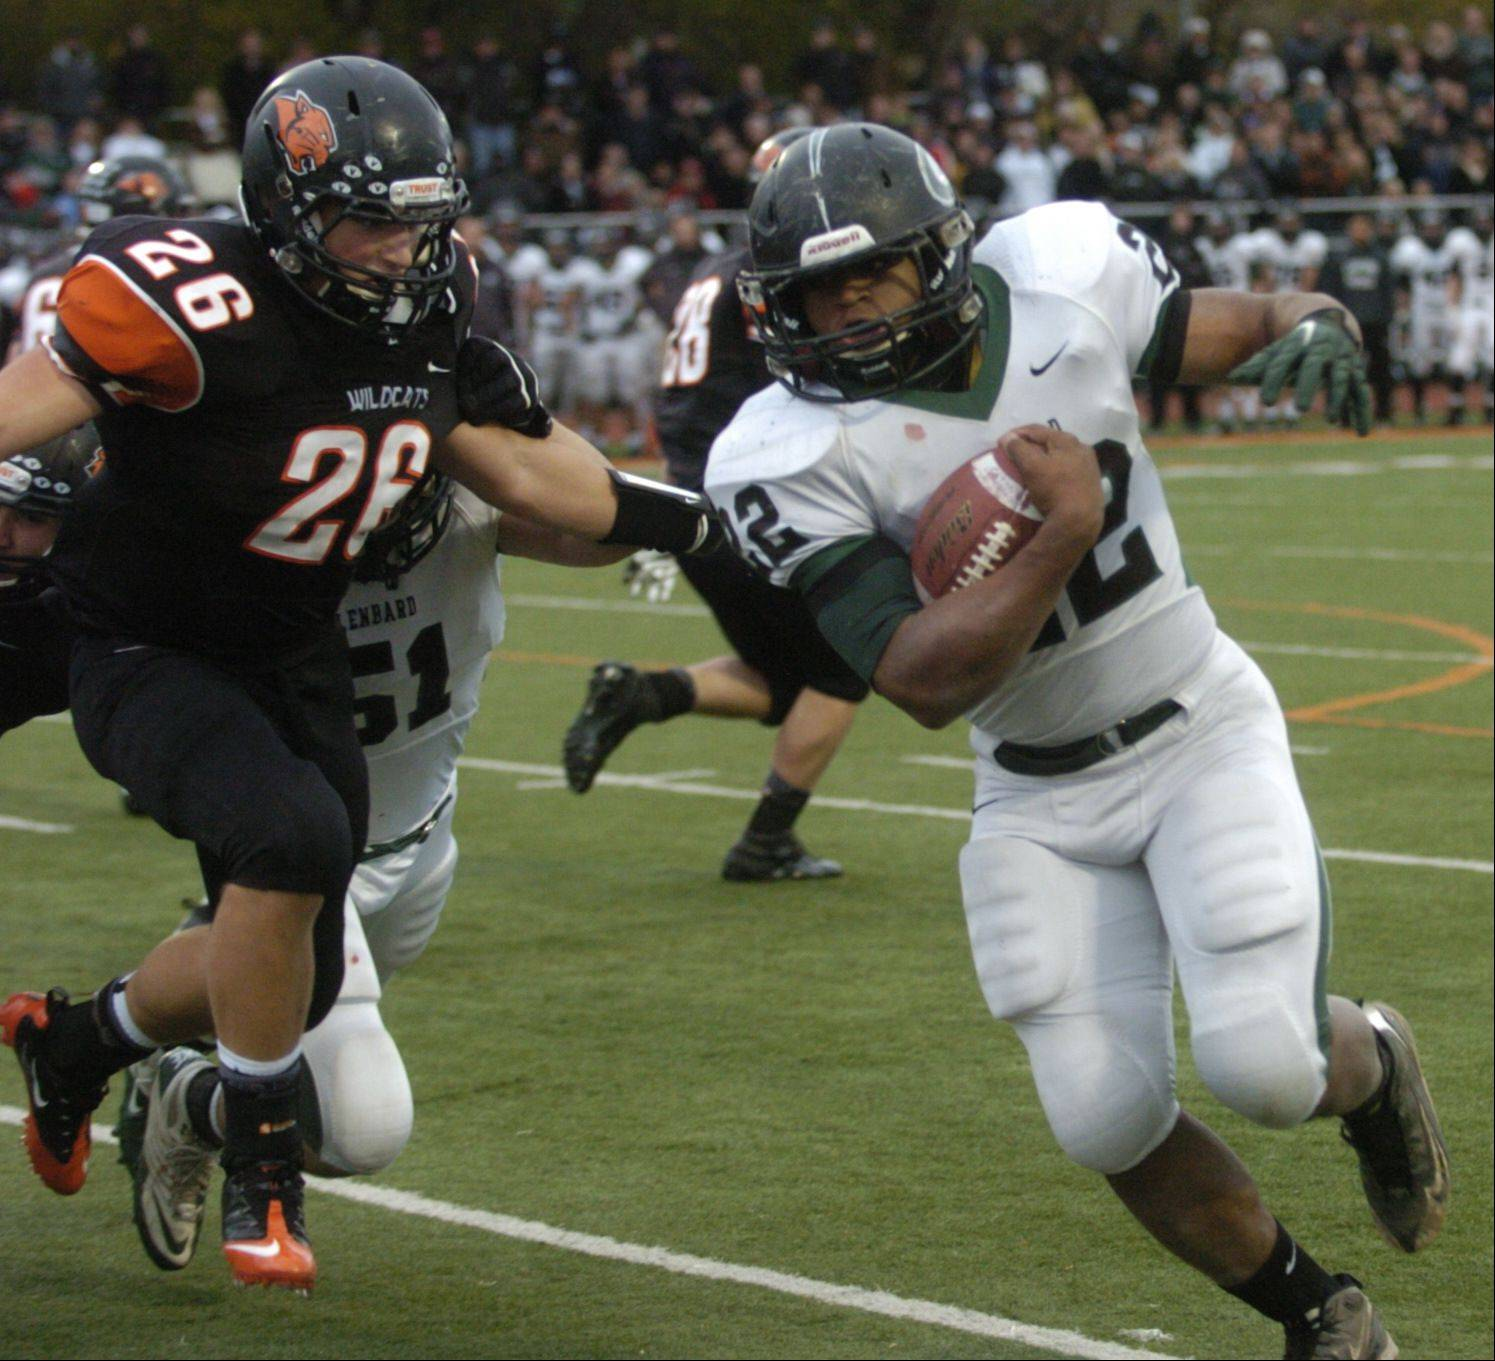 Playoffs - Round Two- Photos from the Glenbard West at Libertyville football game on Saturday, Nov. 3.